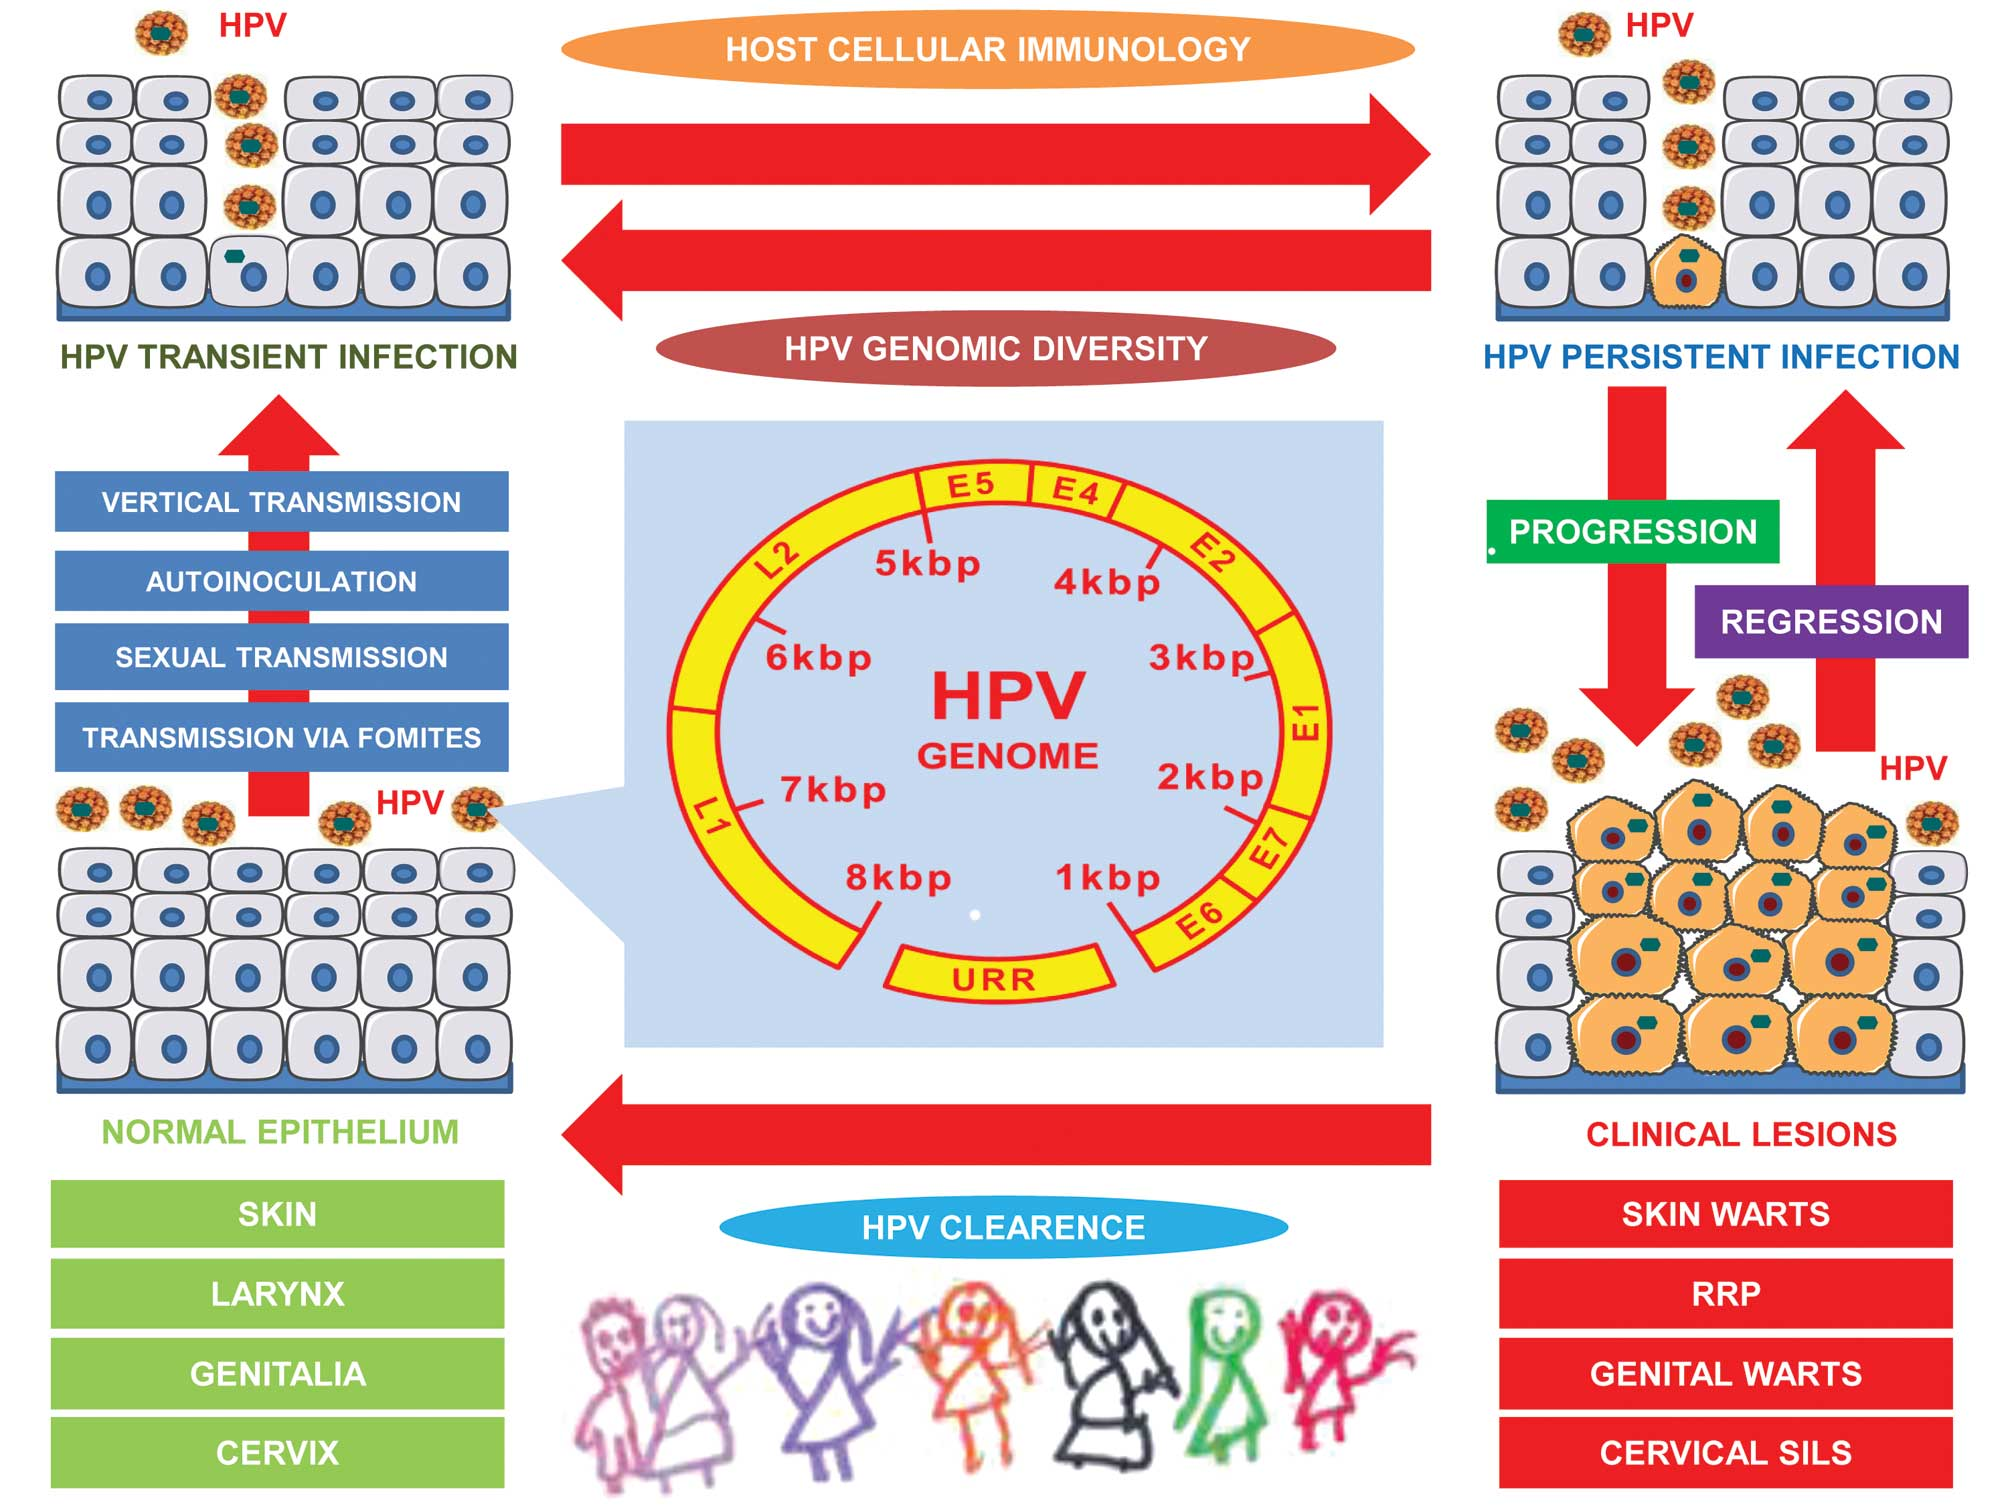 hpv research journal)